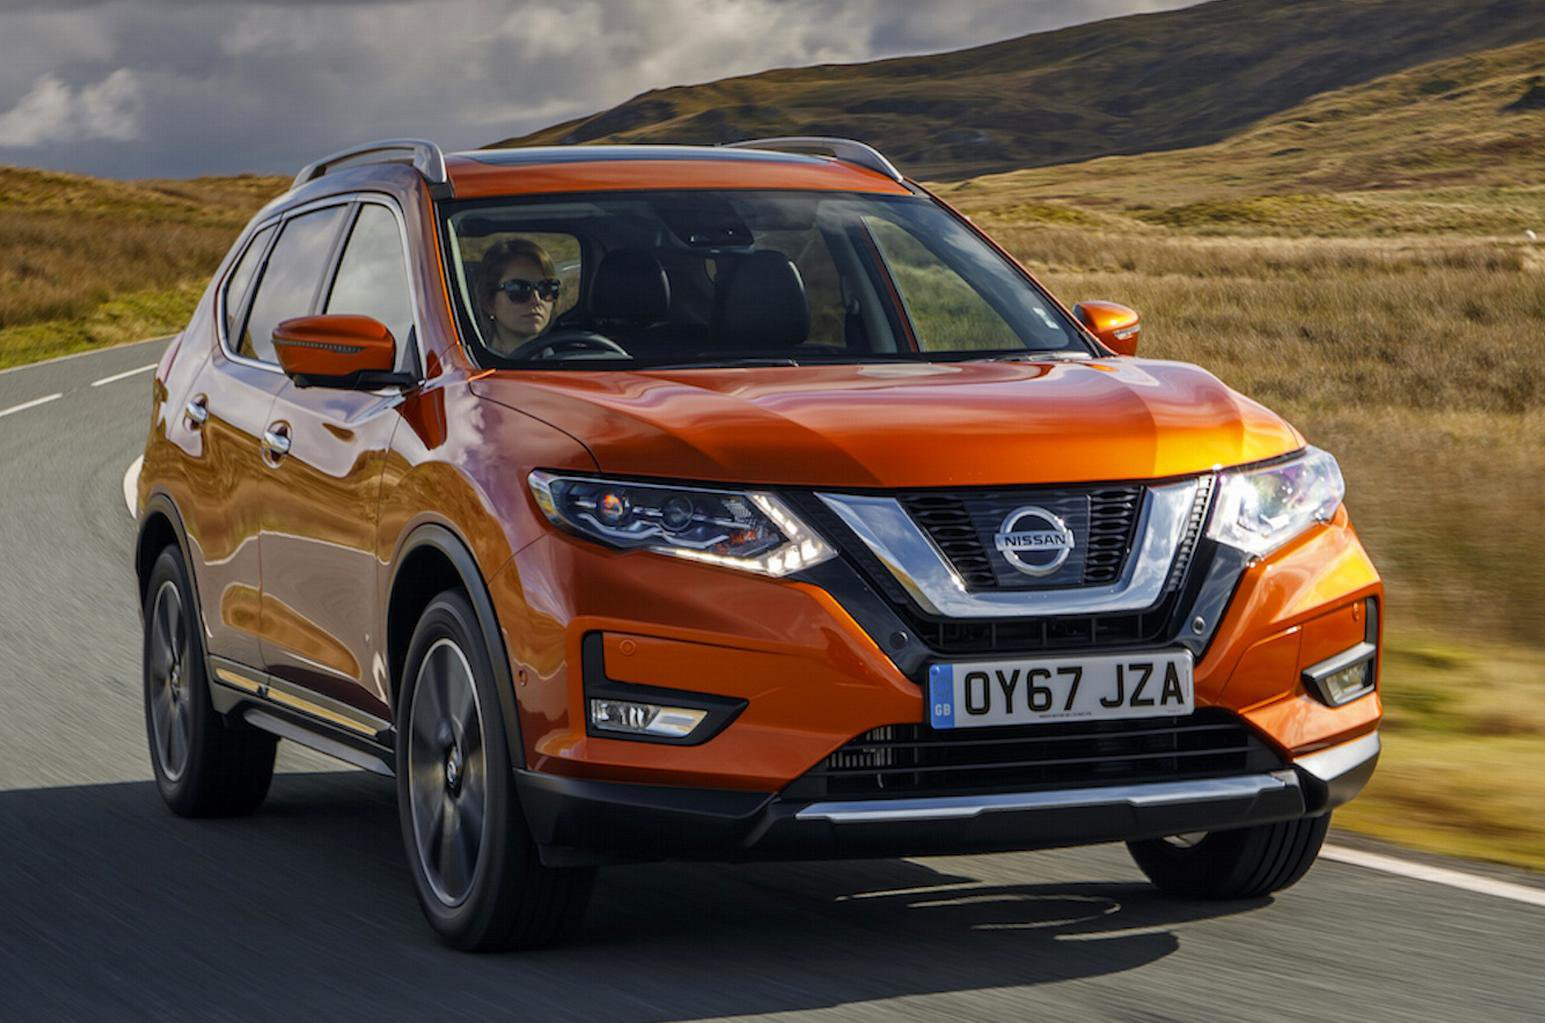 Suv And Care More About A Low Price Than An Engaging Driving Experience The Nissan X Trail Is Worth Look Even Our Favourite Seven Seat Version